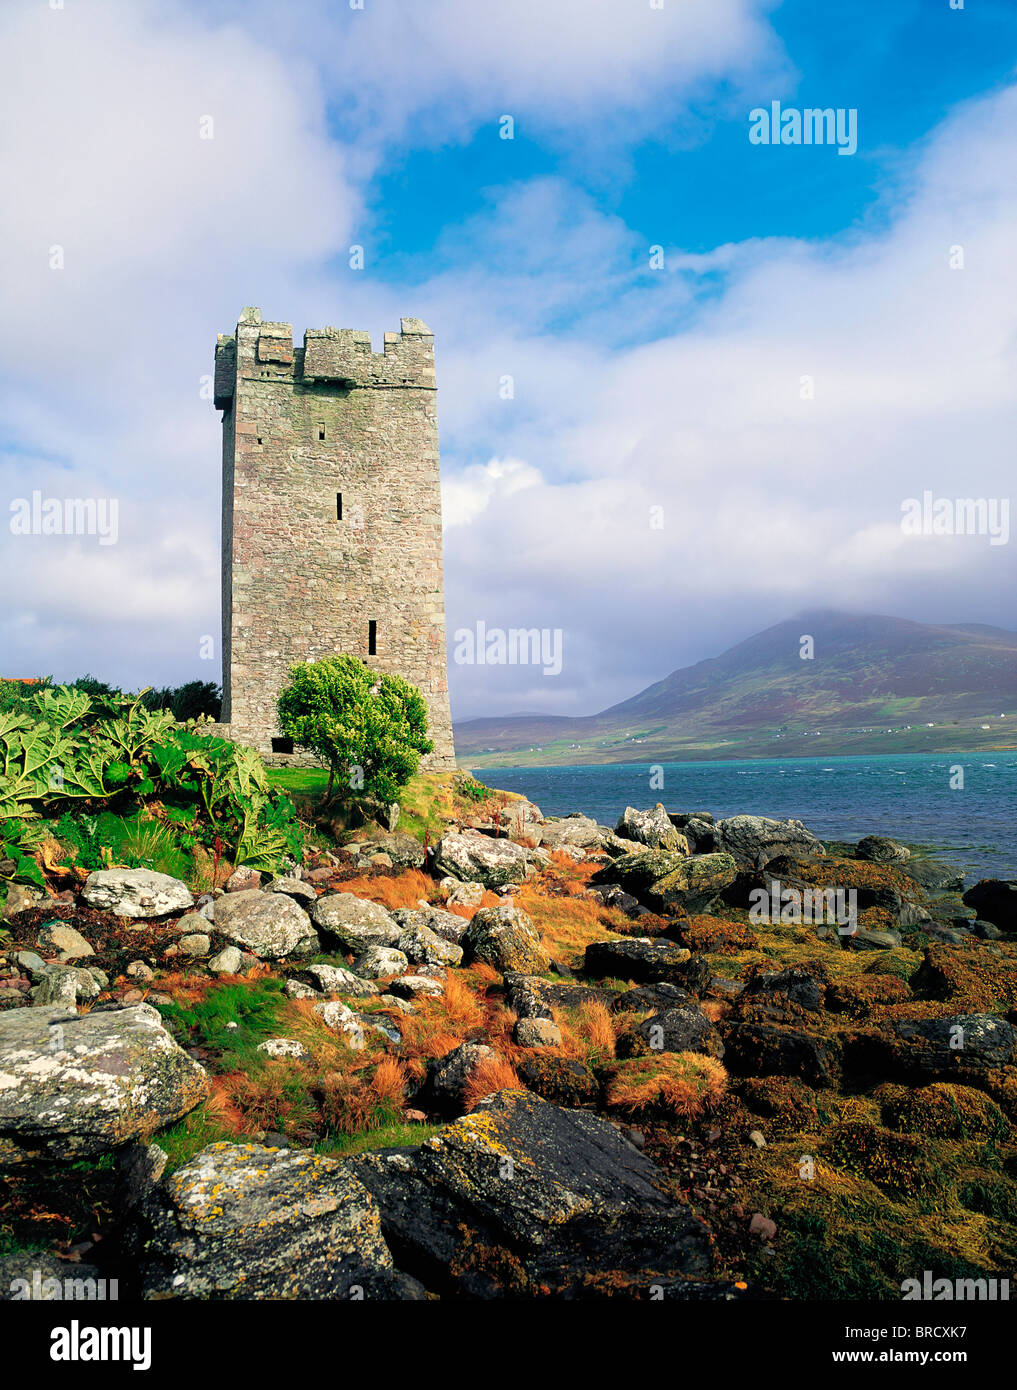 The Tower At Kildavnet, Achill Island, Co Mayo, Ireland, Associated With Grace O'malley - Stock Image